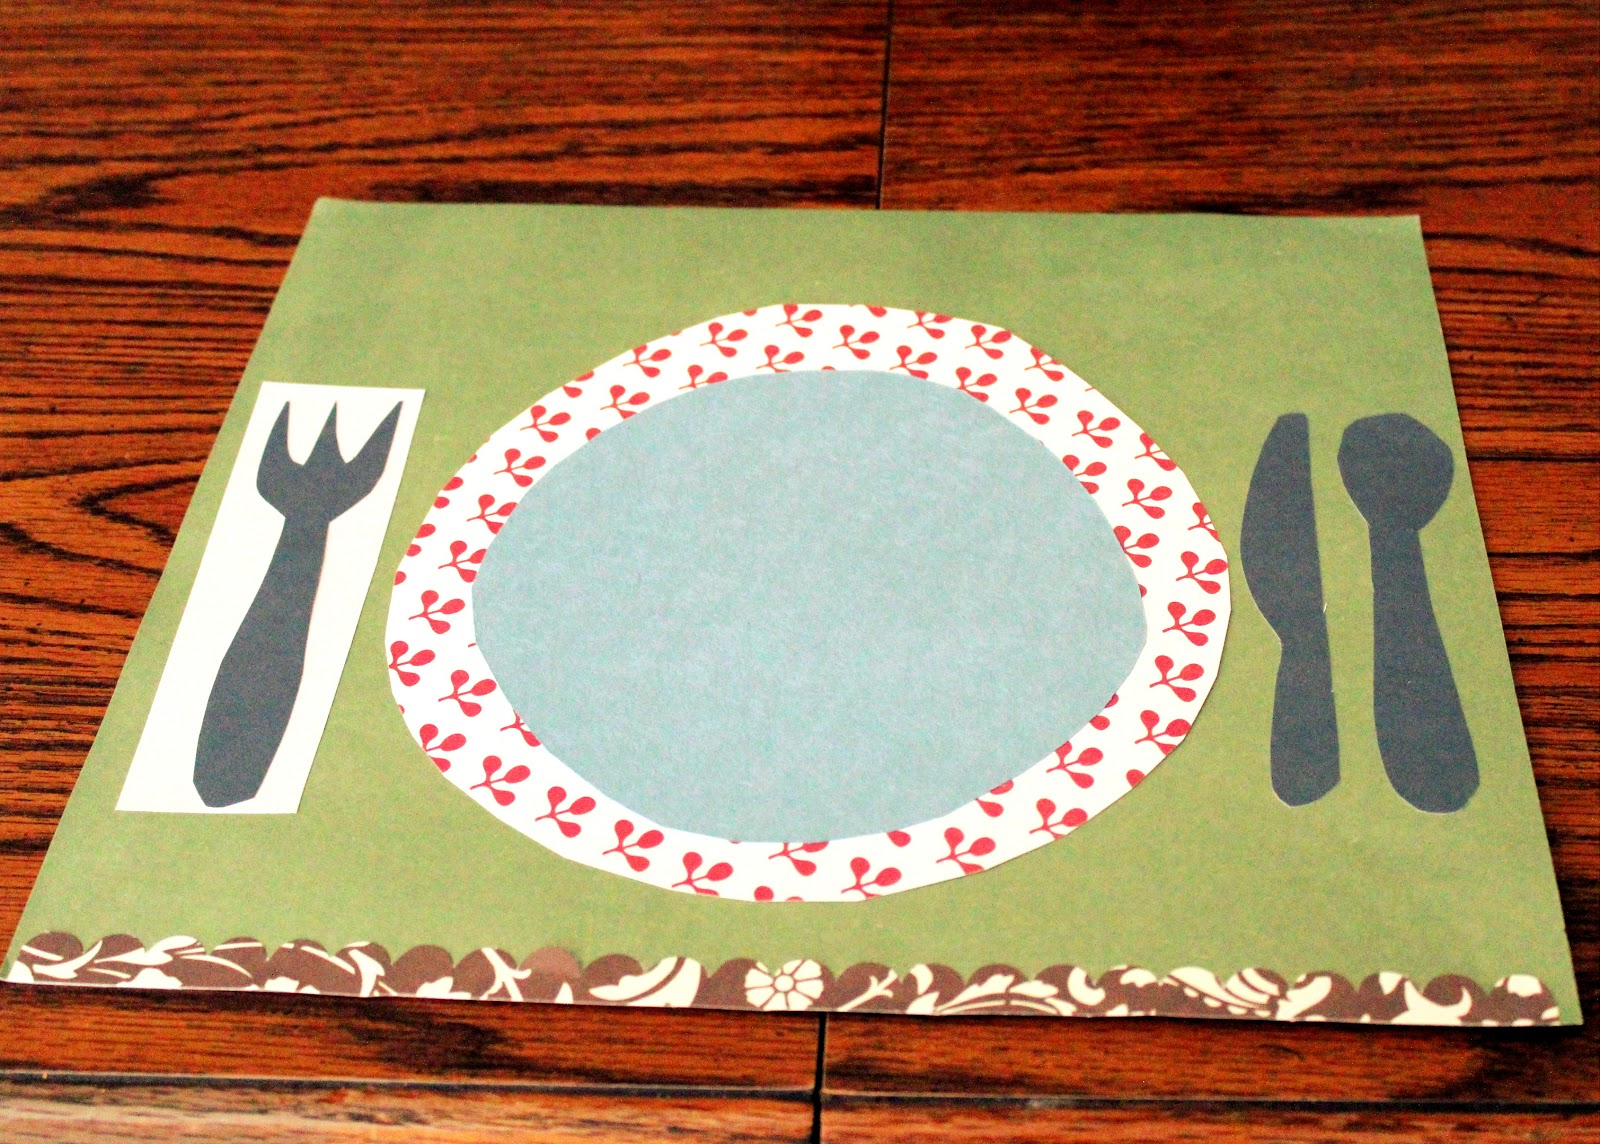 Handmade table mats design - Table Setting Diy For Kids Placemat Easy Craft